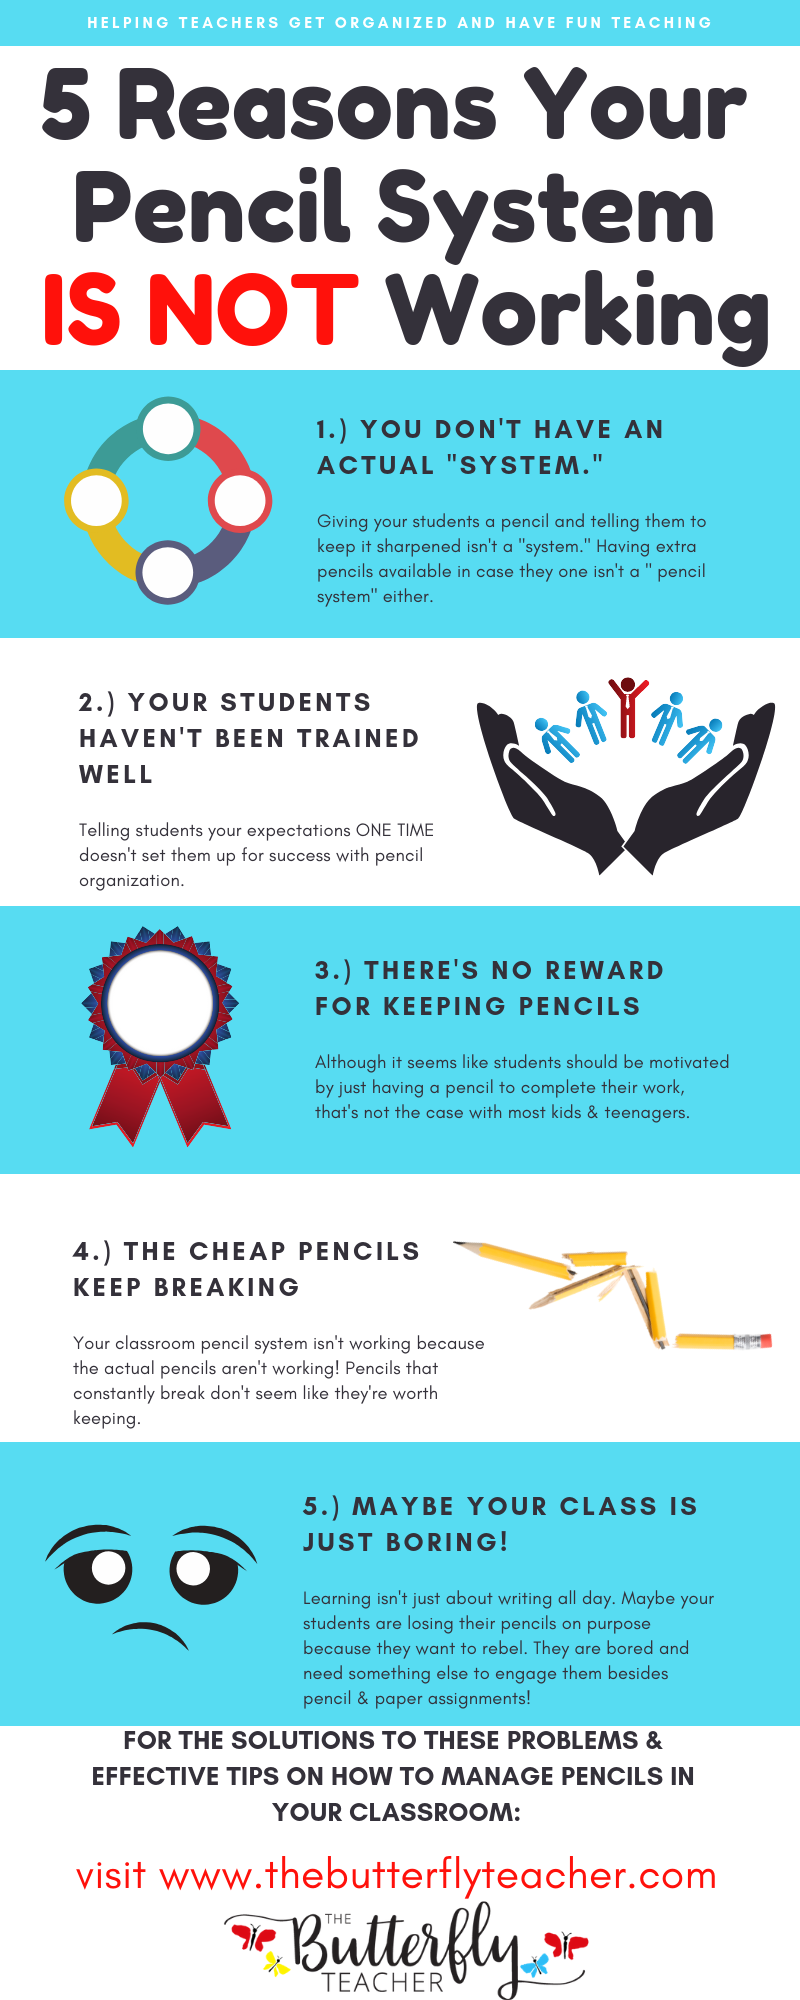 5 Reasons Your Pencil System in the Classroom Isn't Working is part of Teacher help, Classroom pencils, Have fun teaching, Teacher preparation, Teacher blogs, Teaching blogs - This post shares possible reasons your pencil system in the classroom isn't working + a FREE Pencil Planning Guide with extra pencil hacks